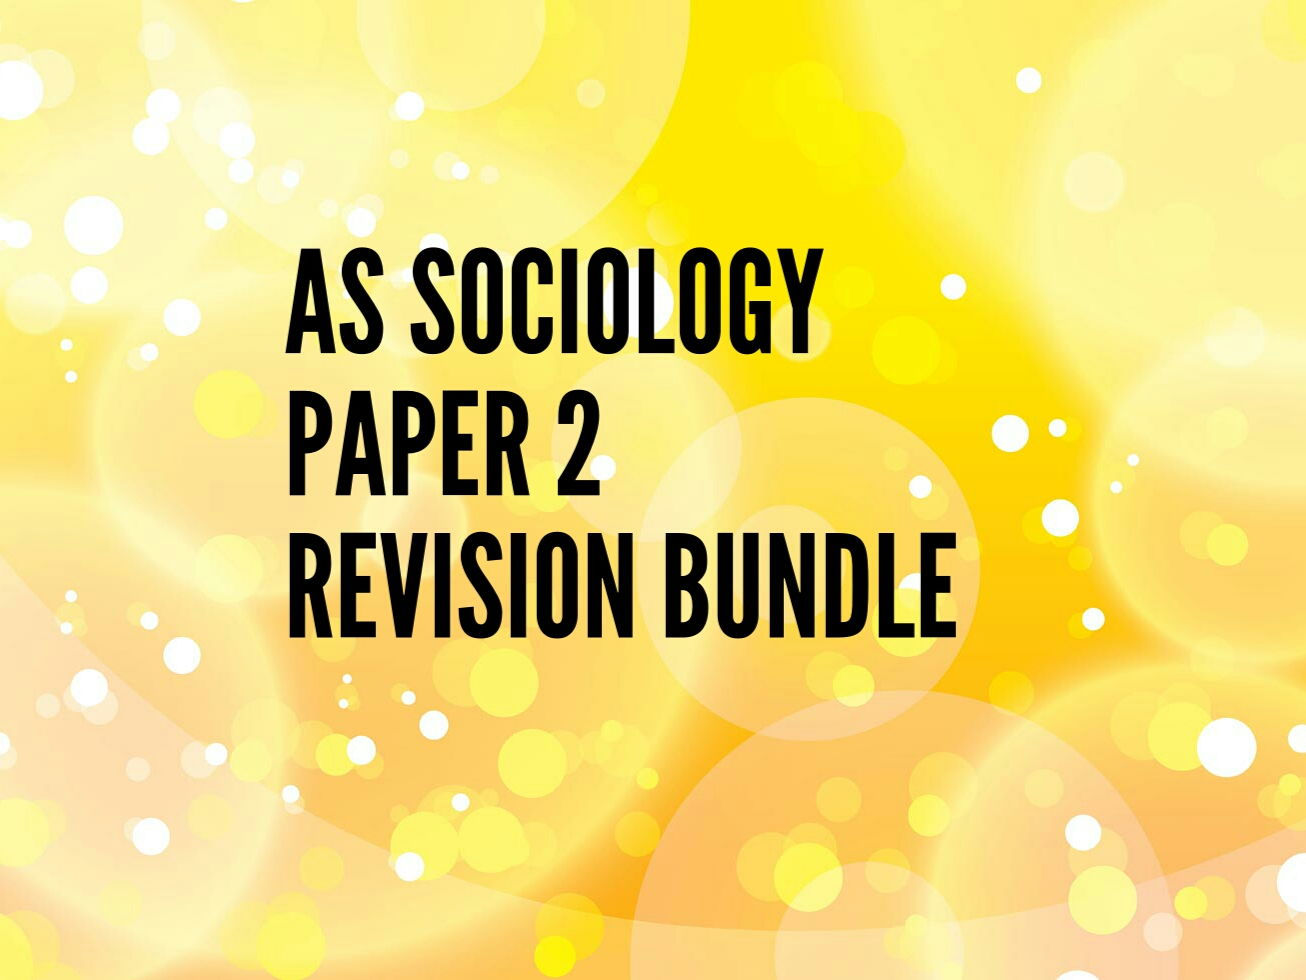 AS SOCIOLOGY PAPER 2 REVISION BUNDLE